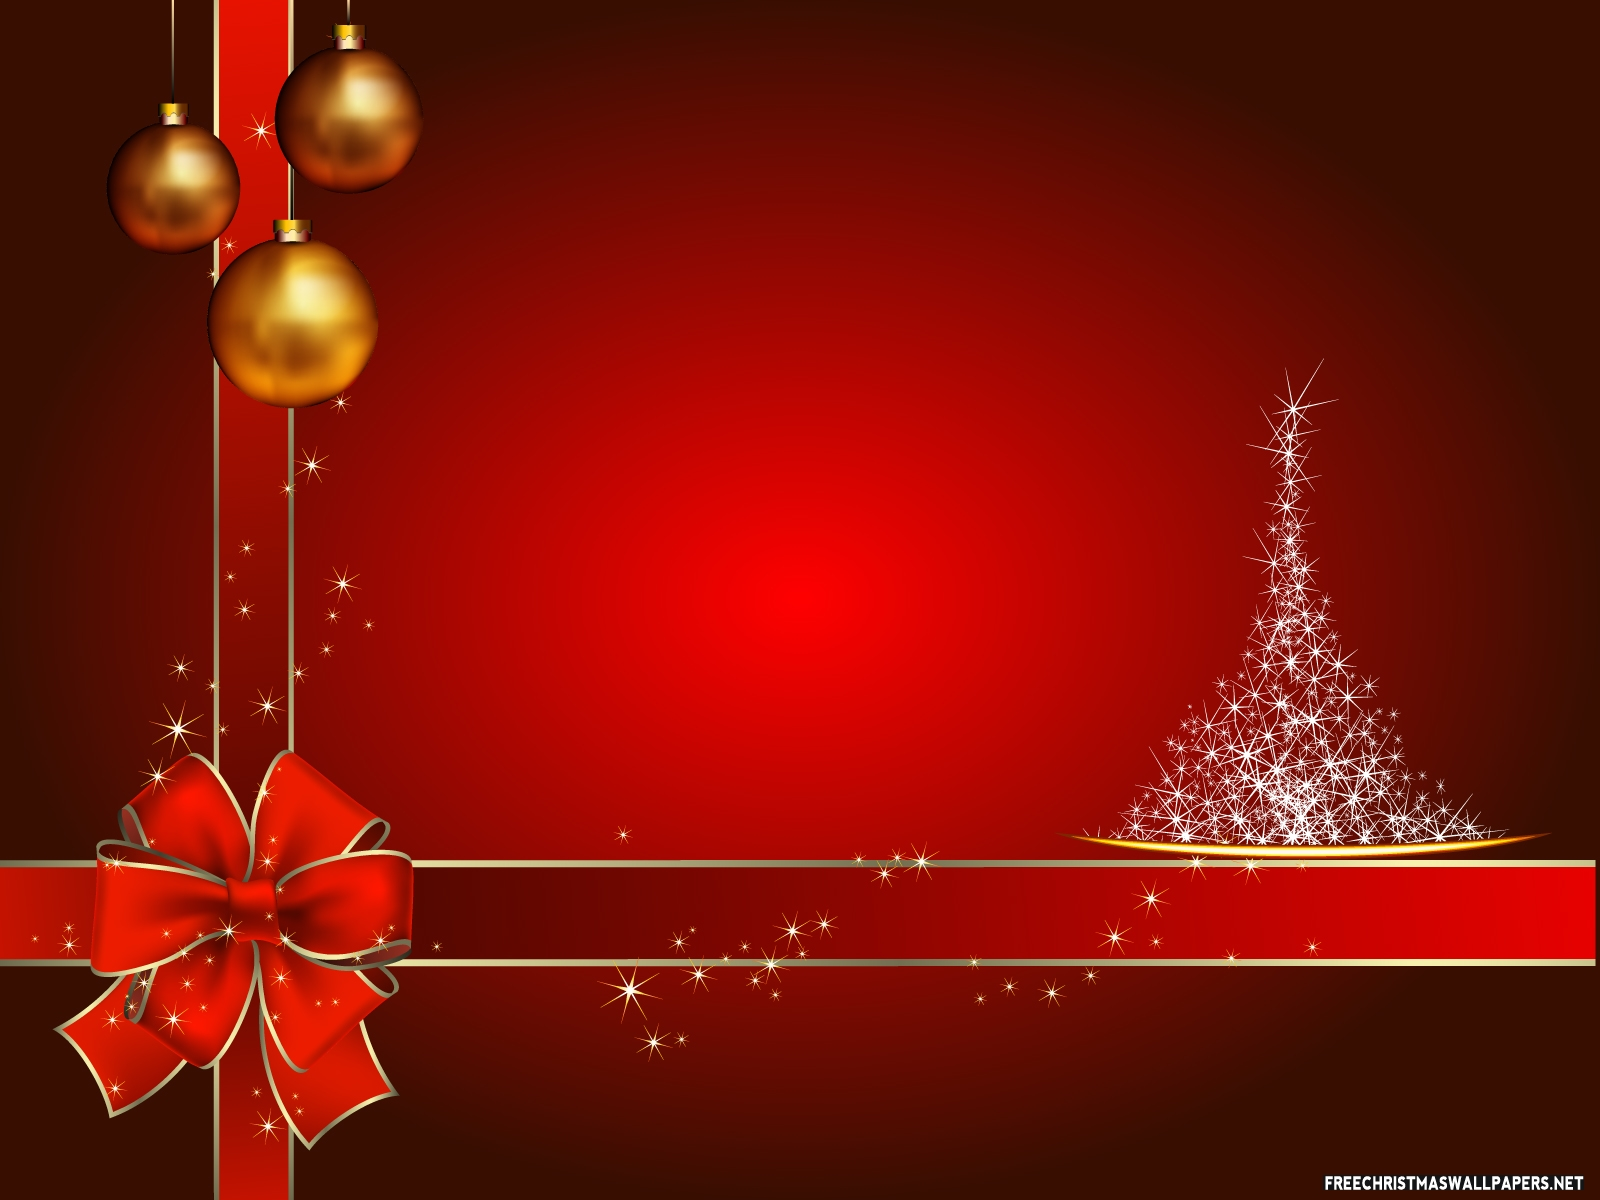 Download Christmas Gift Wallpaper Wallpapers Area 1600x1200